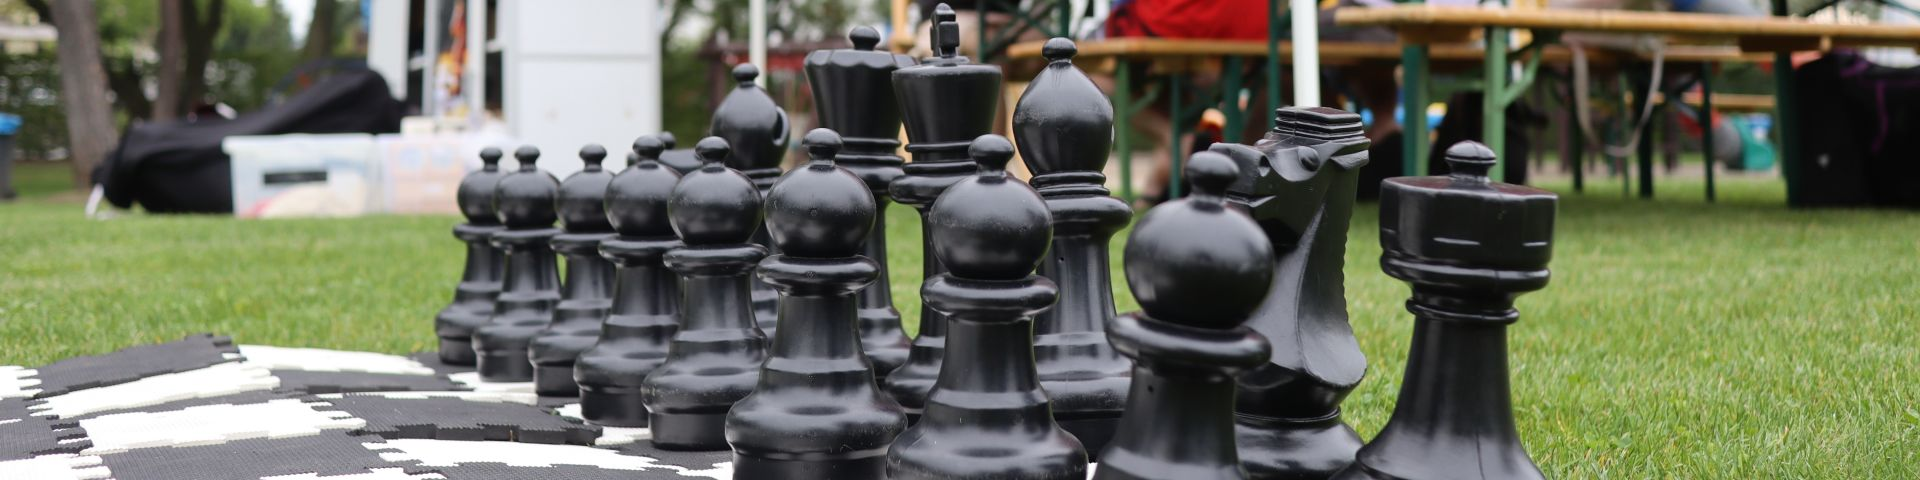 chess at a board game exhibition